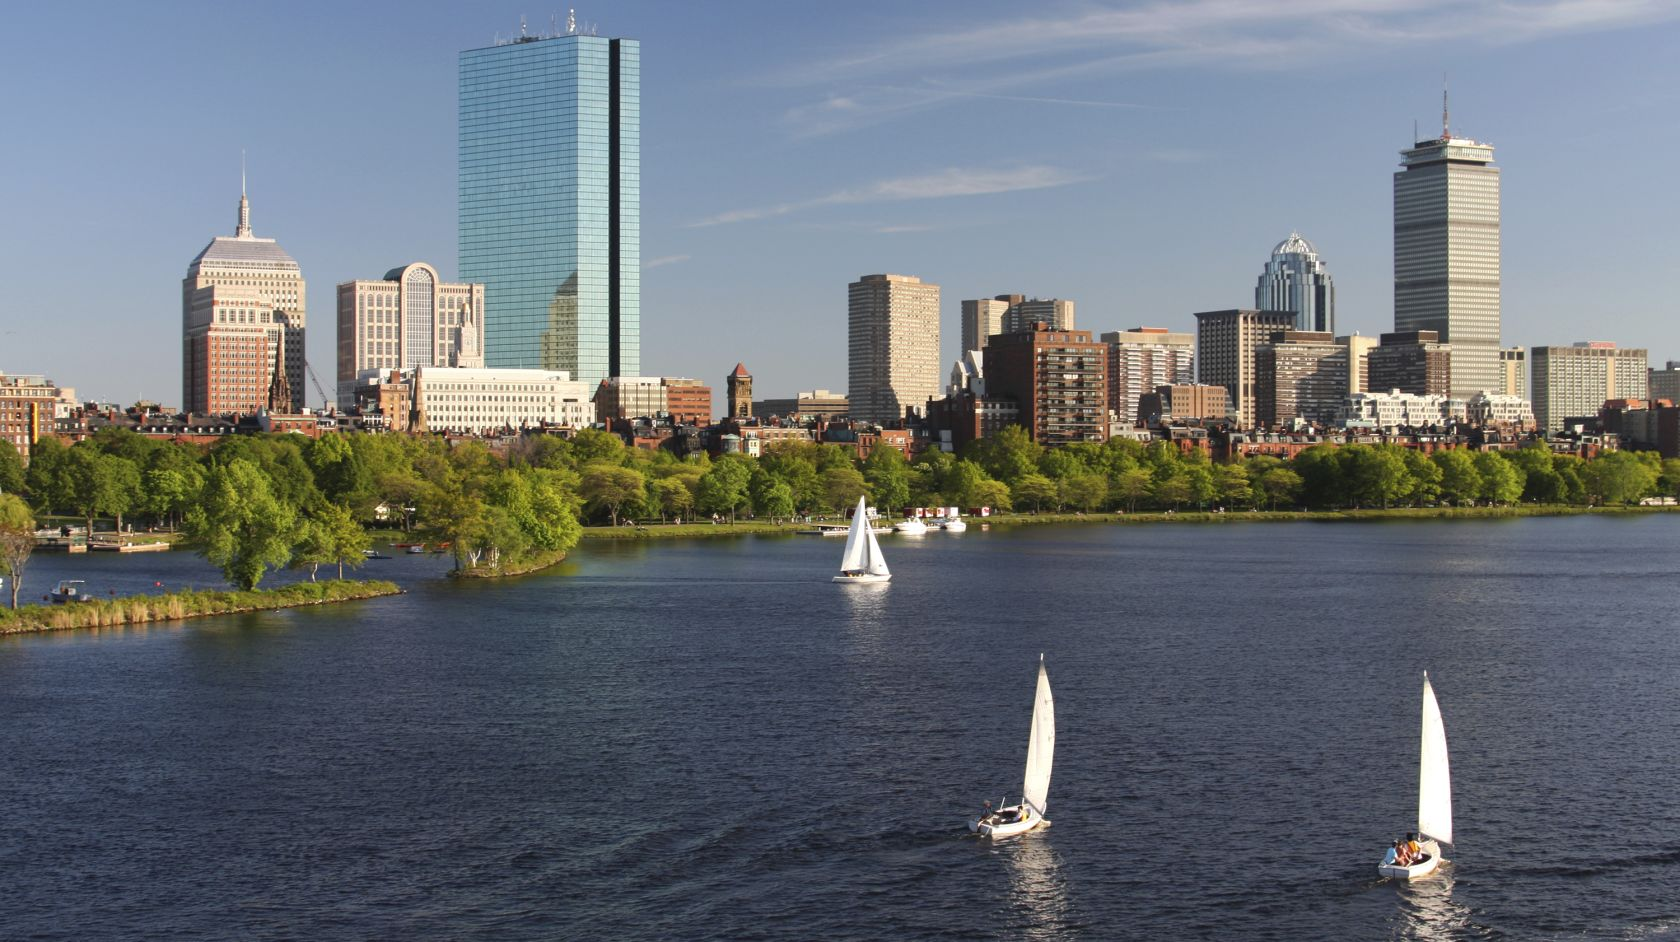 Charles River summer skyline in Boston Massachusetts near Inn at Longwood Medical Hotel